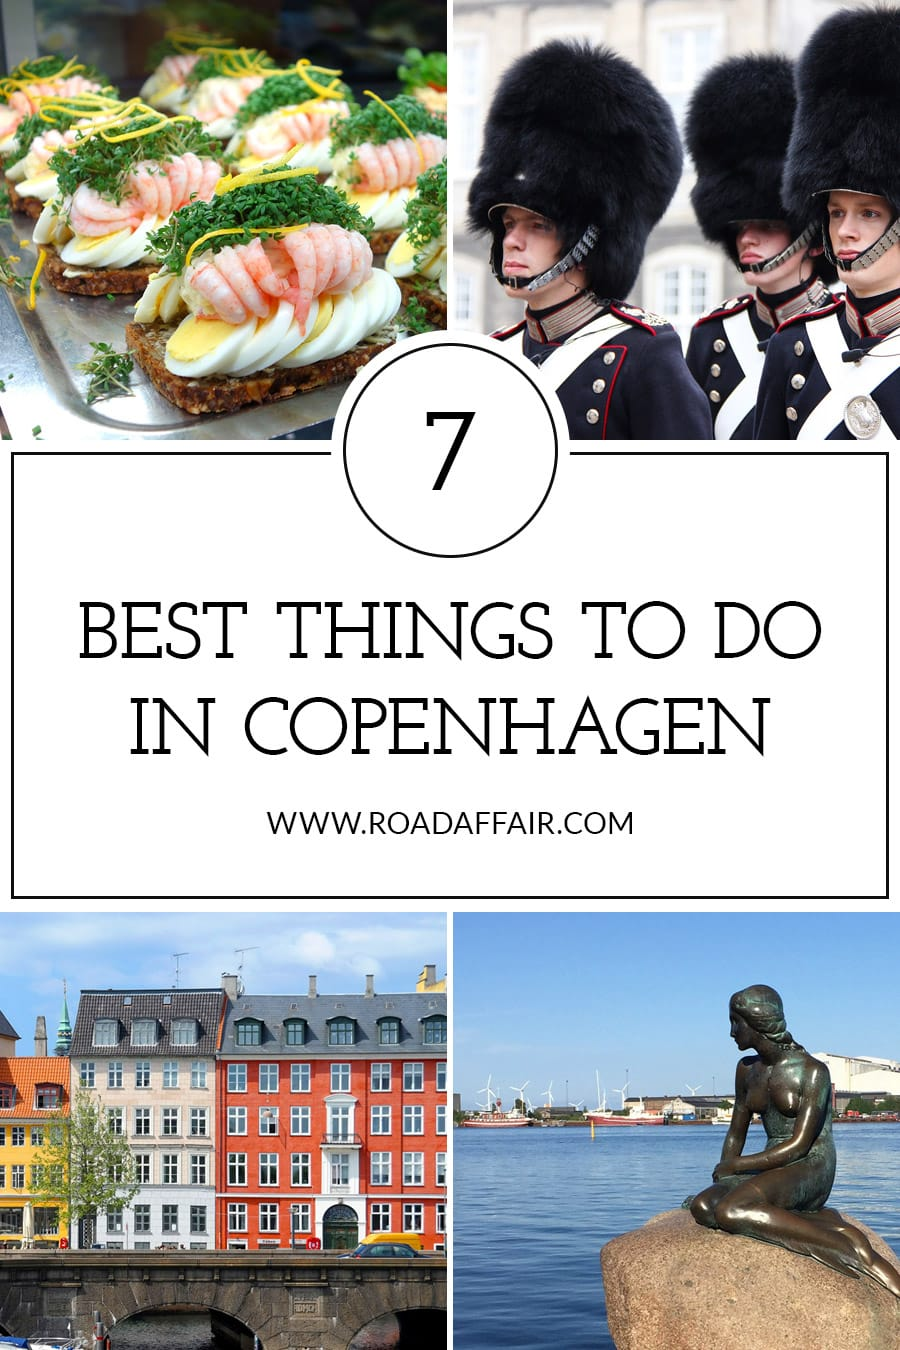 Best Things to Do in Copenhagen, Denmark